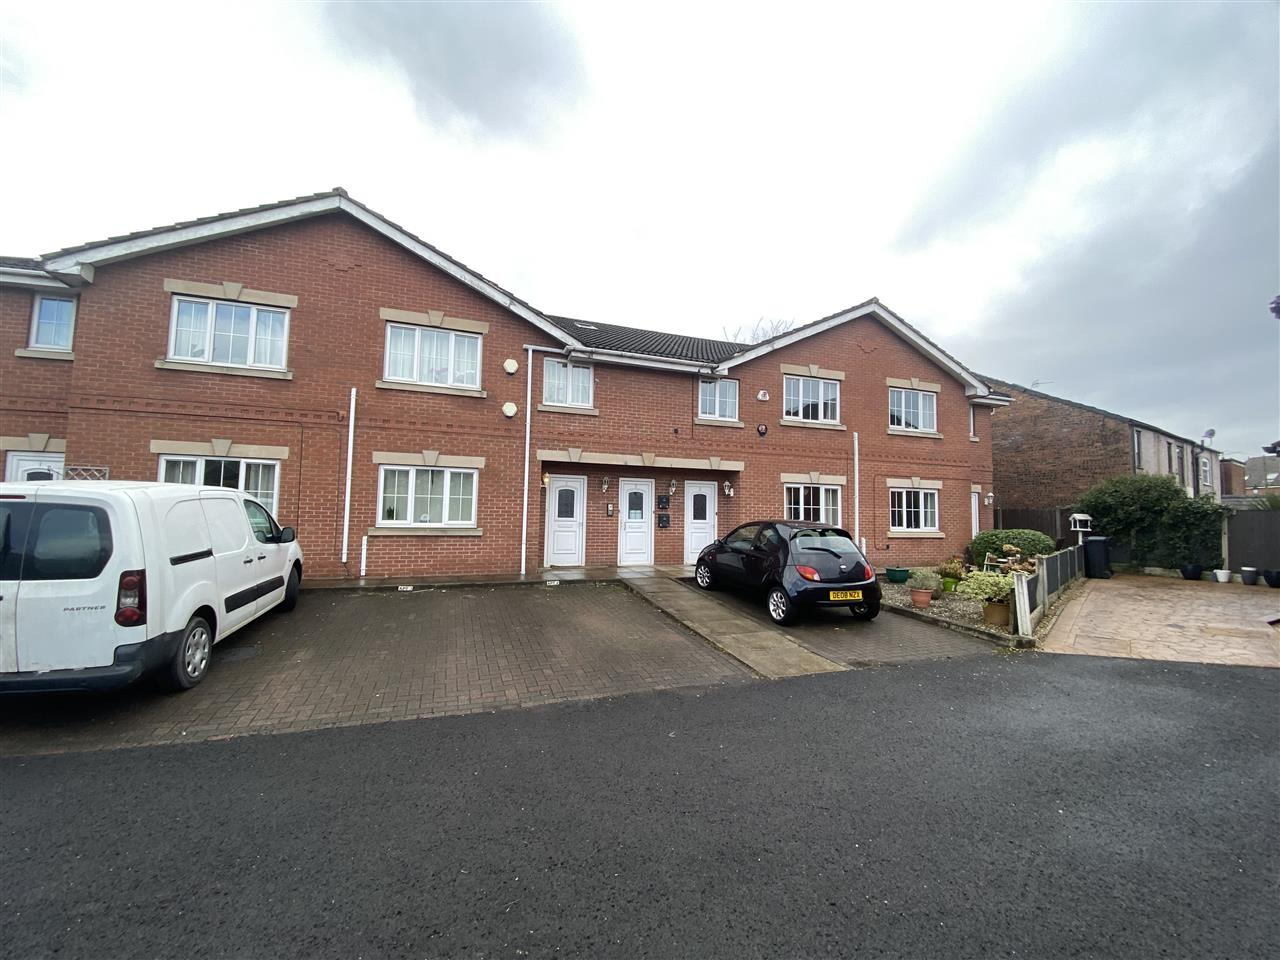 2 bed apartment to rent in Alden Court, Westhoughton, Westhoughton - Property Image 1